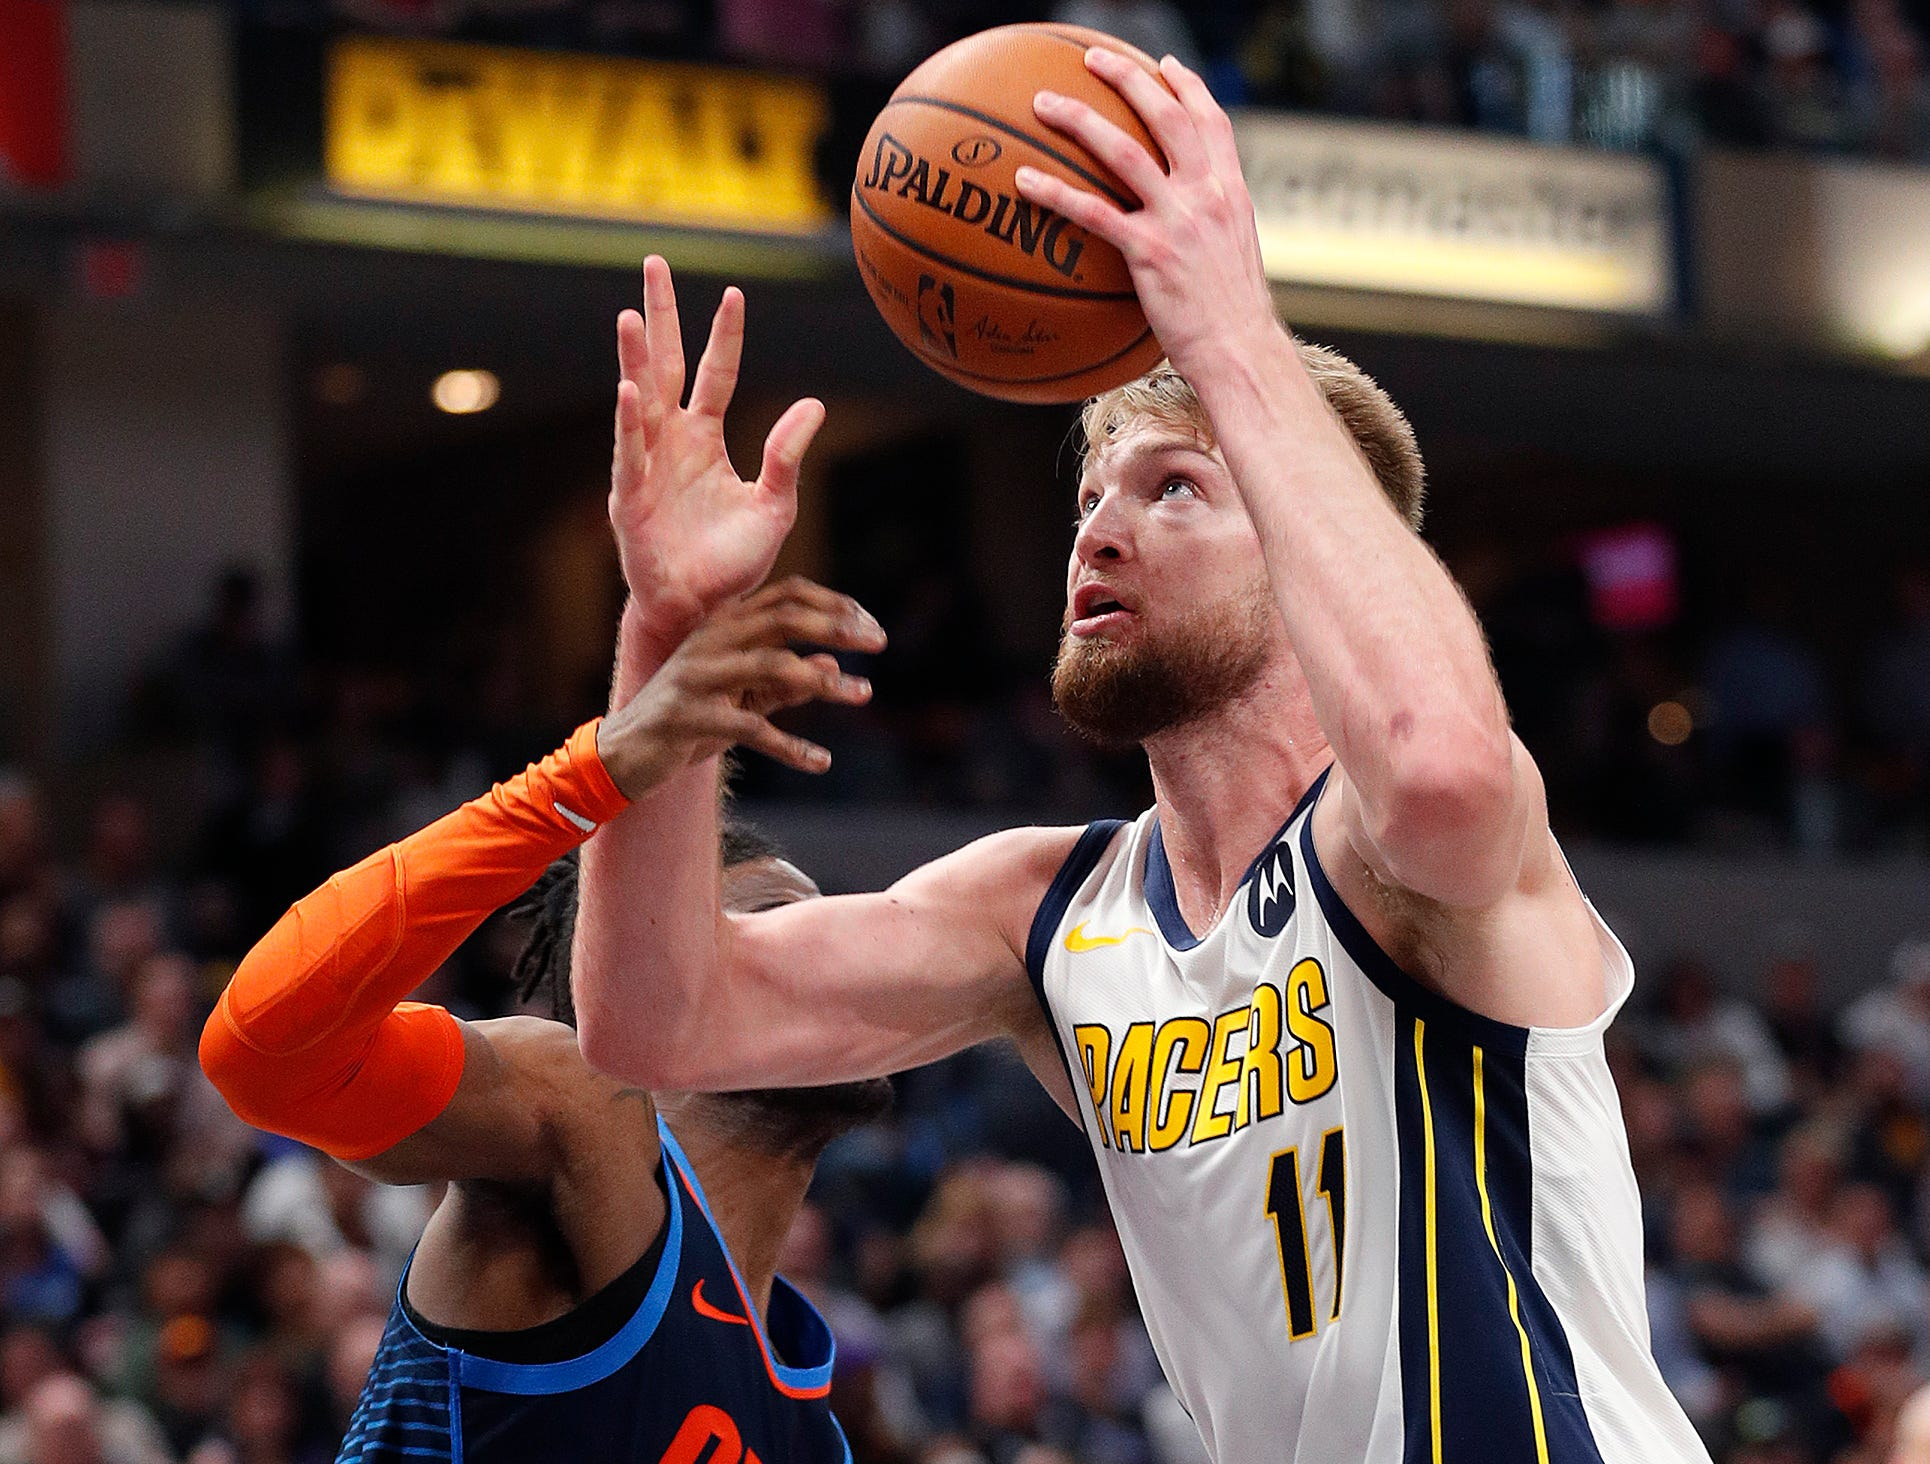 Indiana Pacers forward Domantas Sabonis (11) puts in a basket over Oklahoma City Thunder forward Nerlens Noel (3) in the second half of their game at Bankers Life Fieldhouse on Thursday, Mar. 14, 2019. The Pacers defeated the Thunder 108-106.